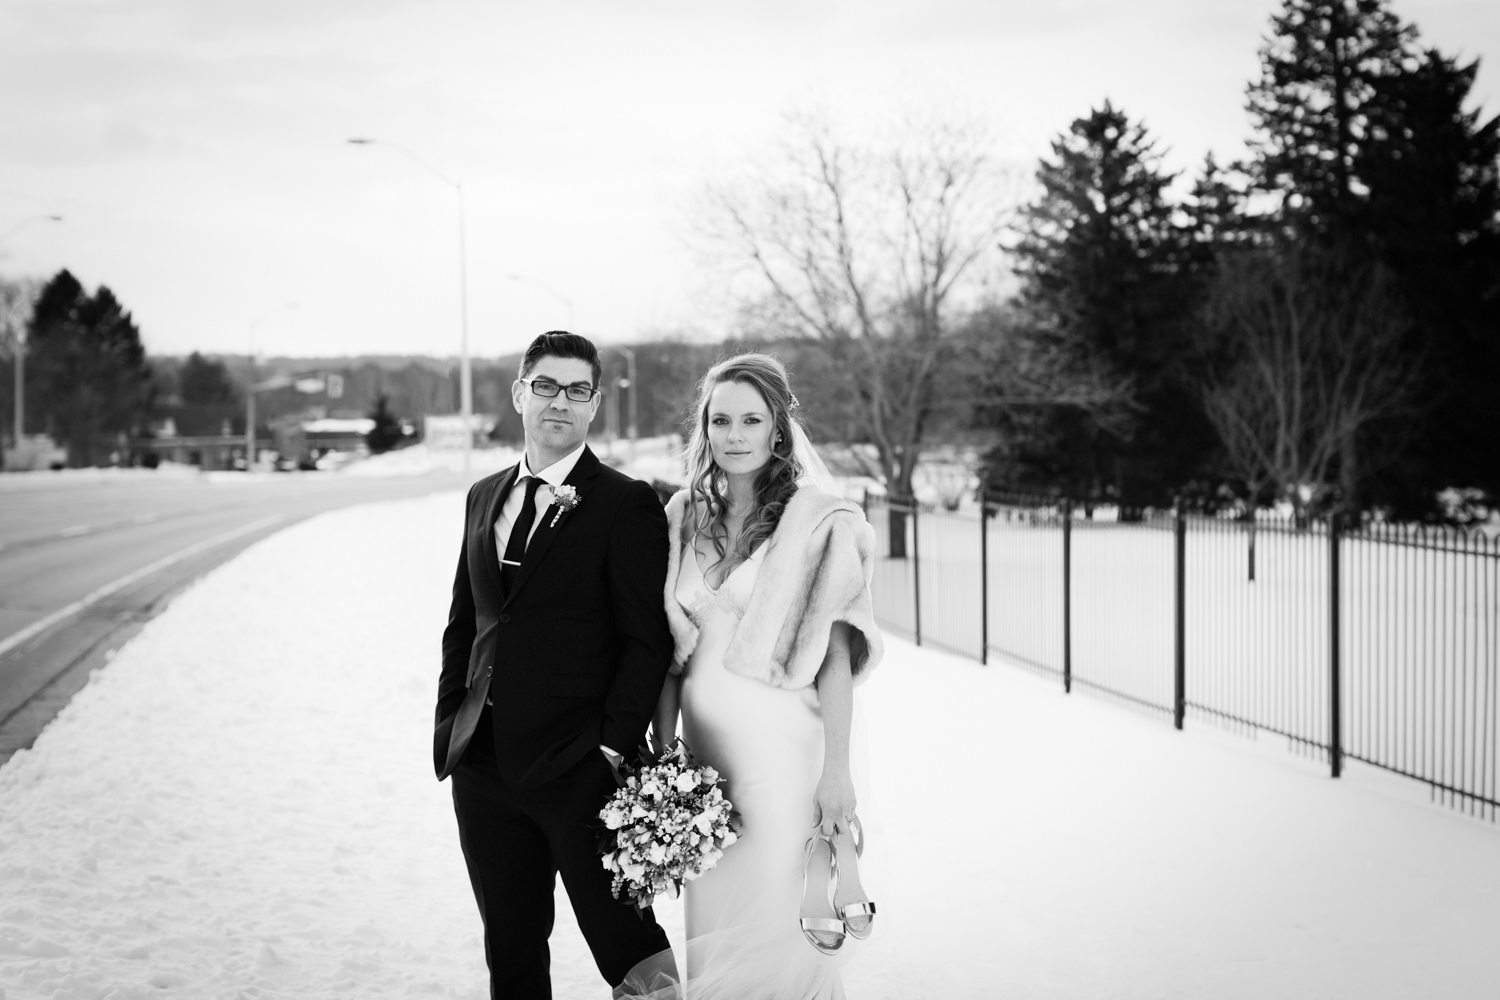 Stylish wedding couple in the snow